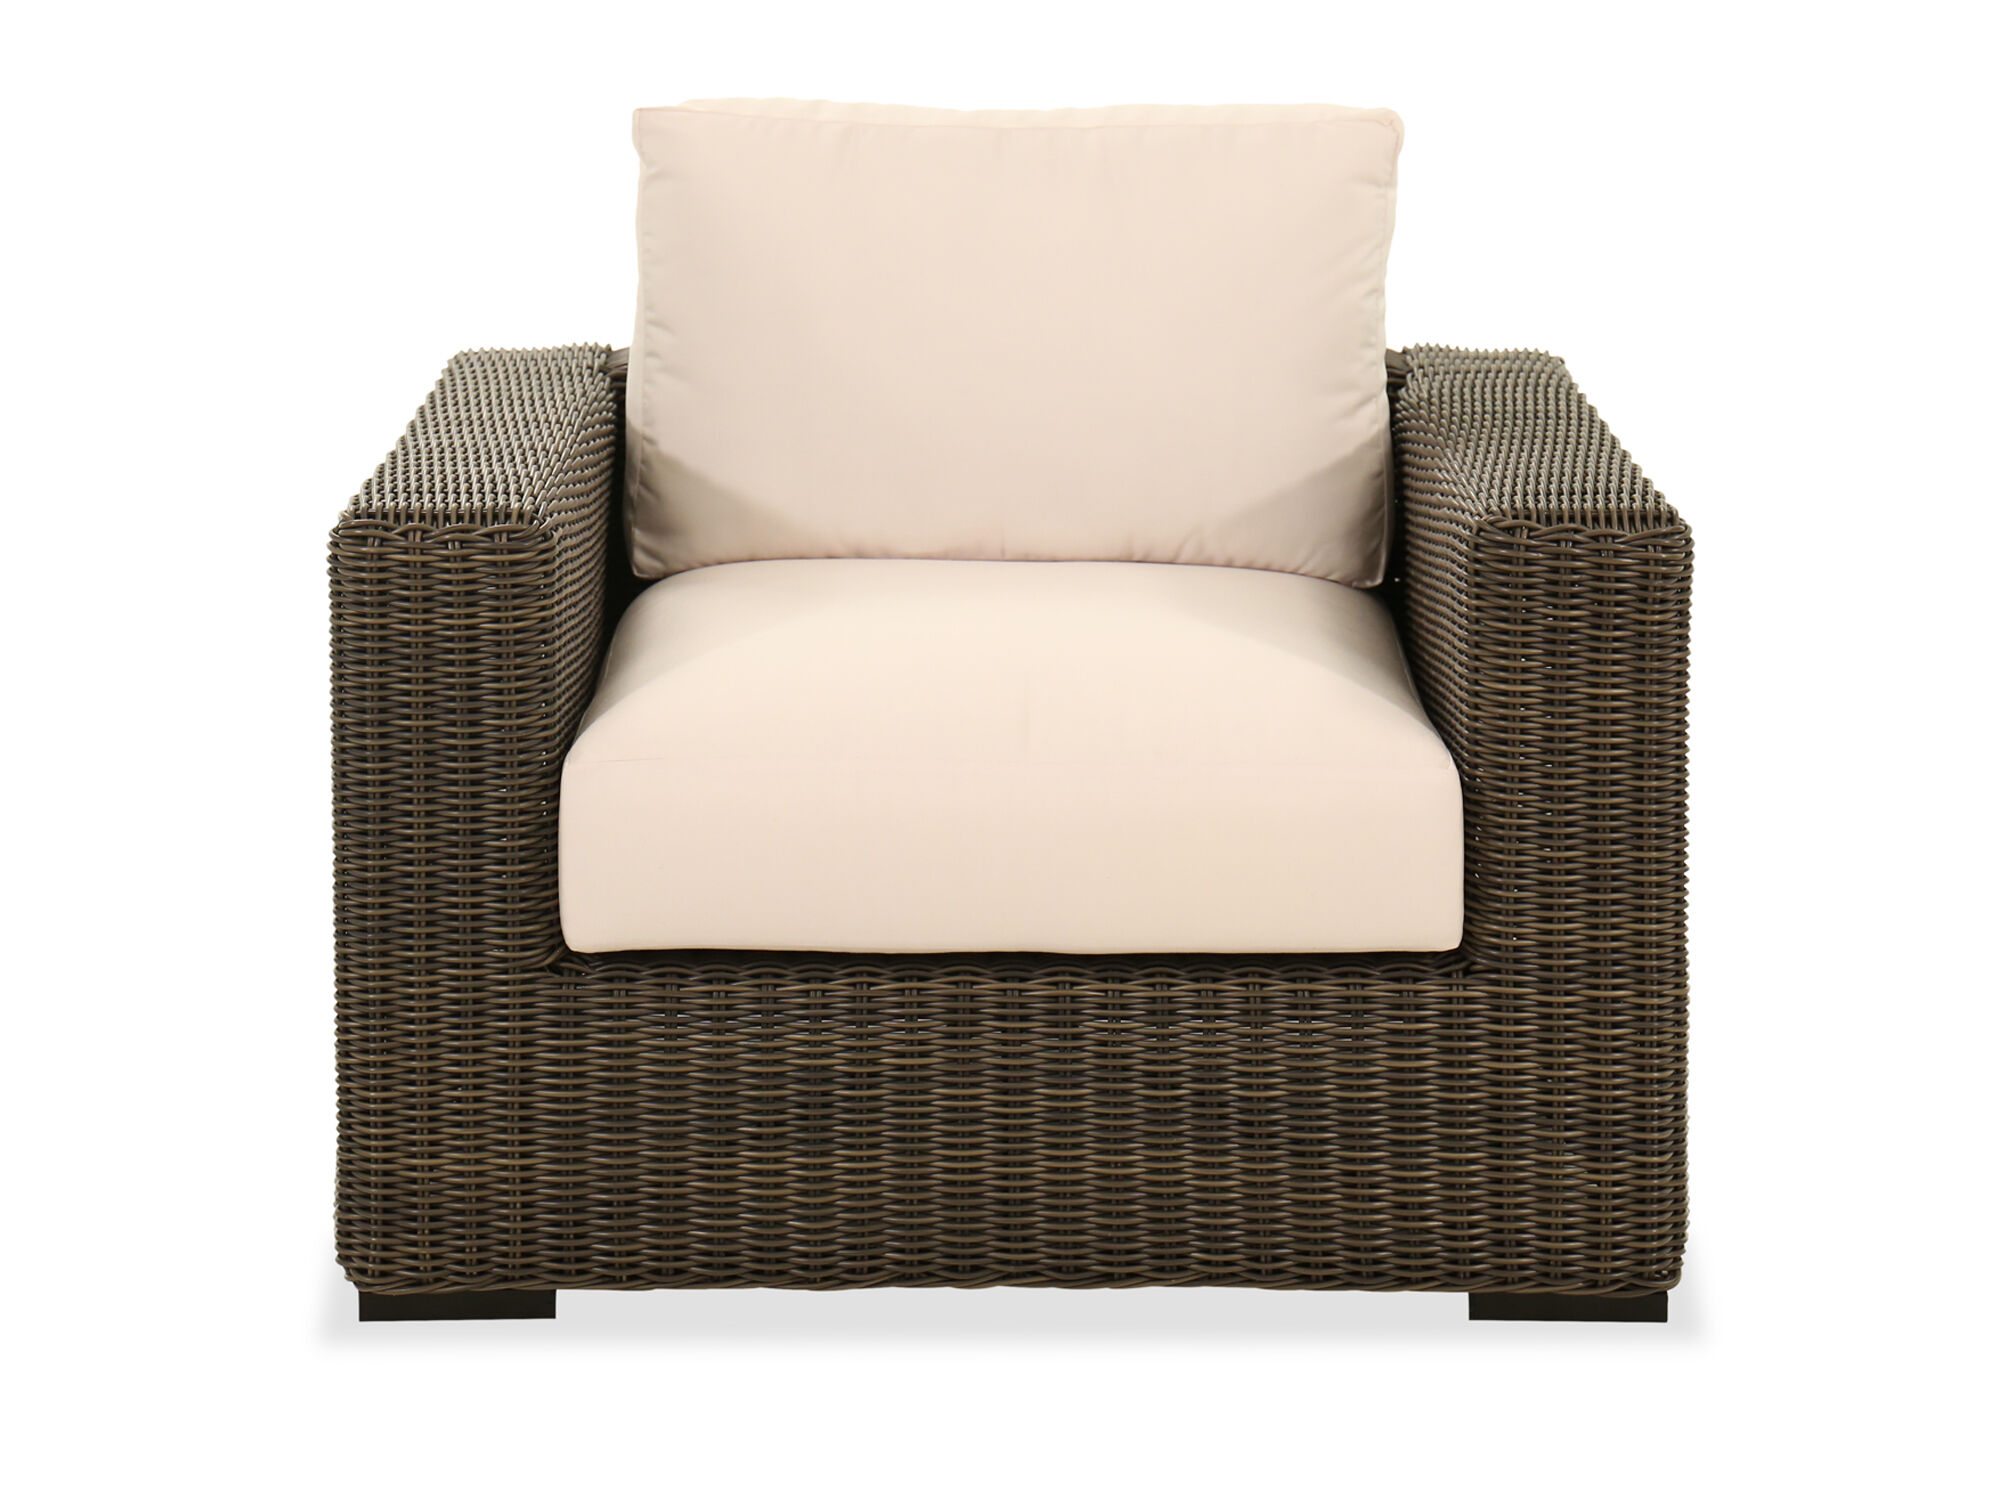 contemporary woven patio chair in brown